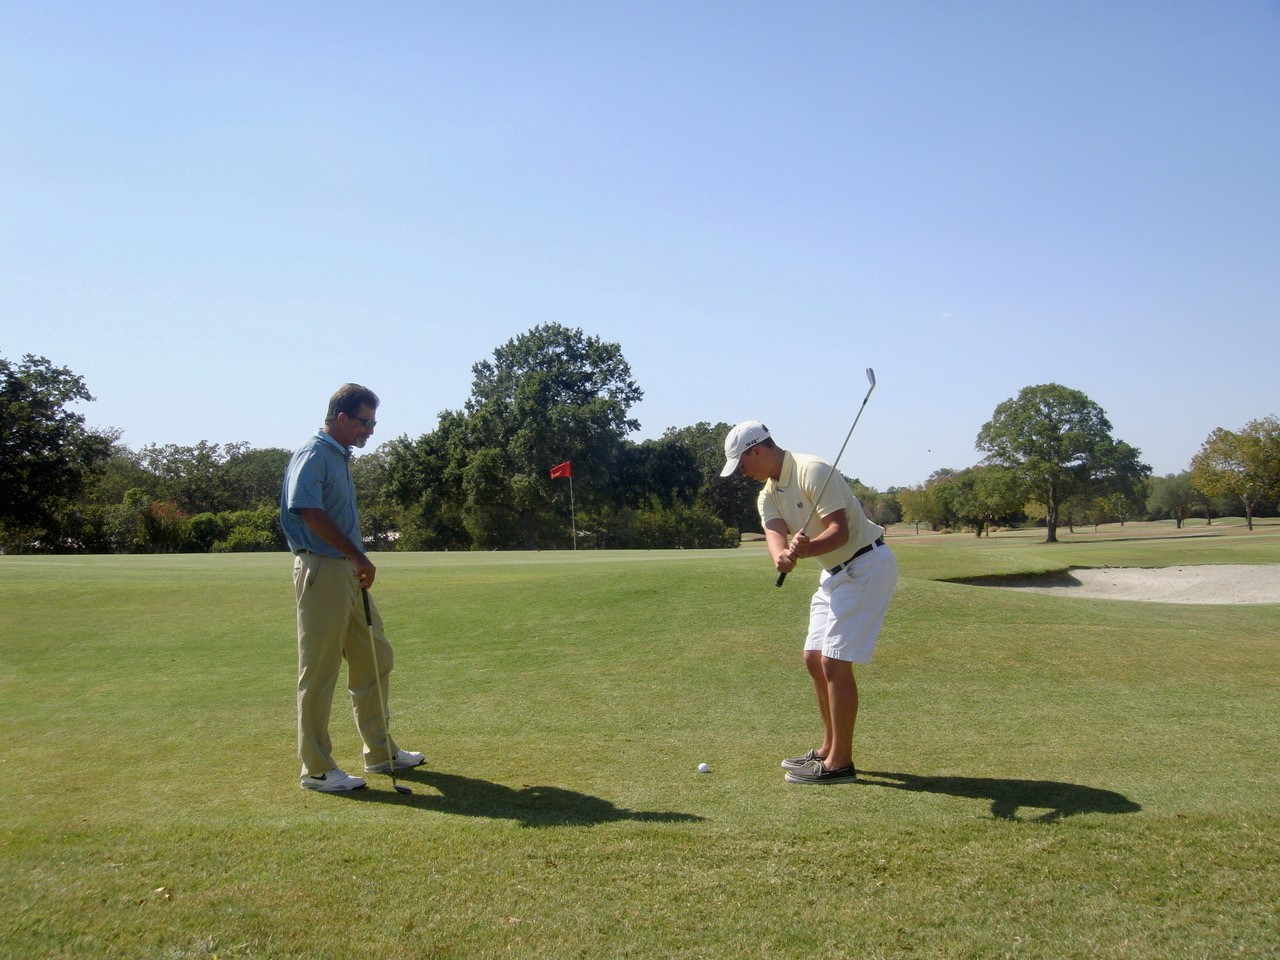 Golfer gets lesson at Brenham Country Club